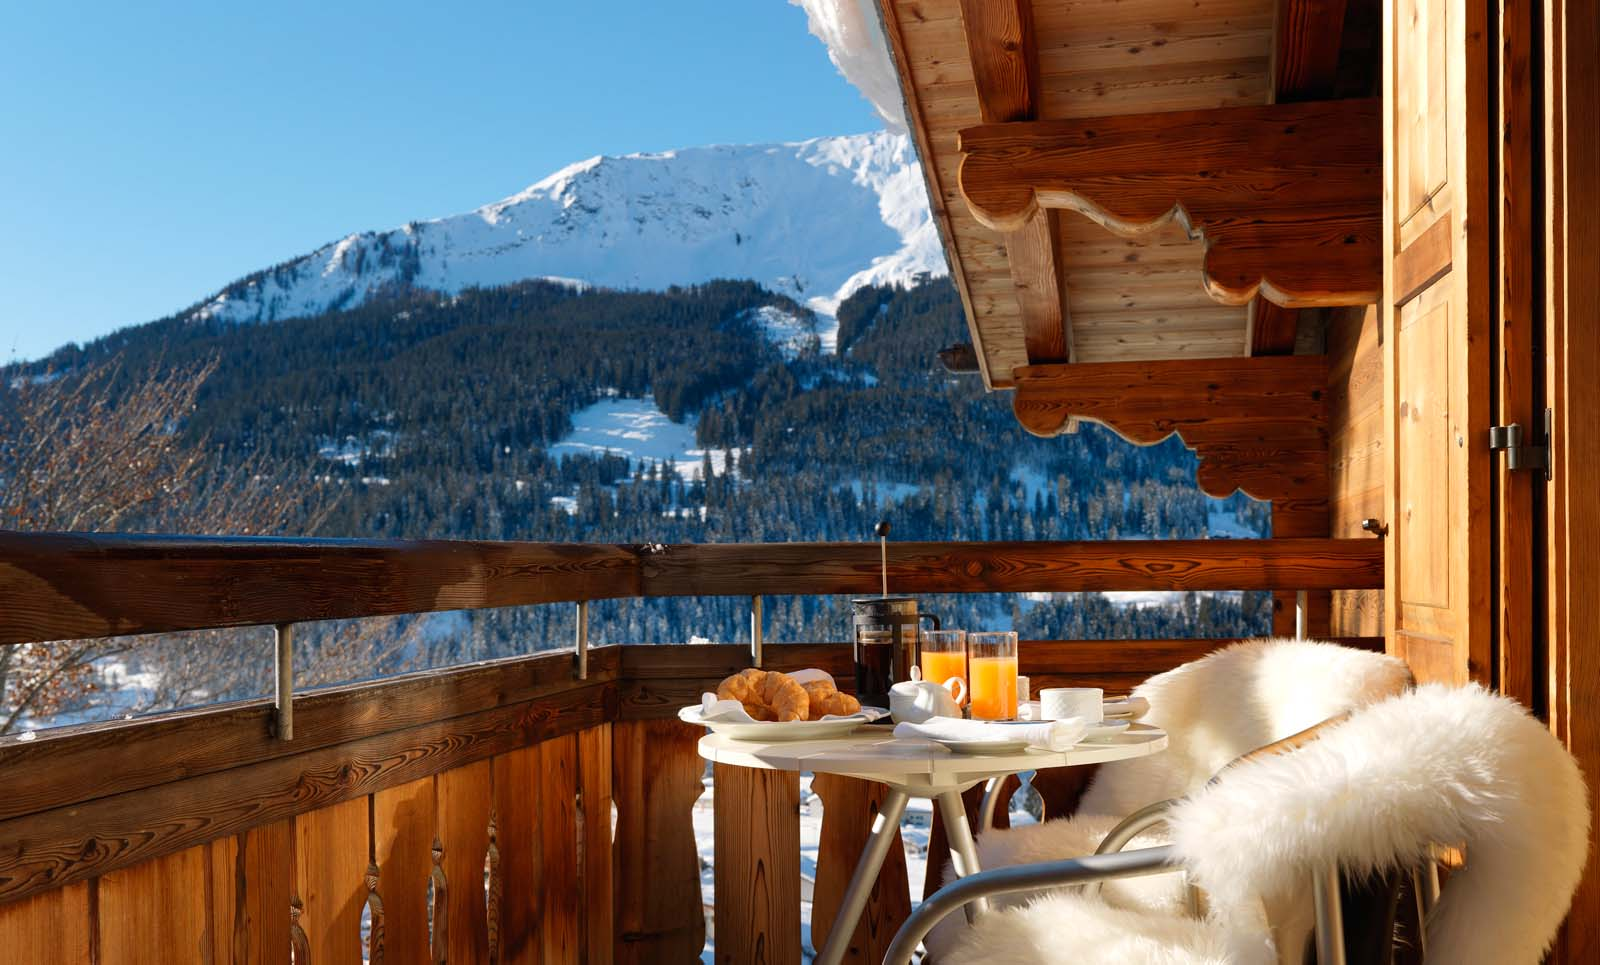 Chesa falcun in klosters by skiboutique for Boutique hotel ski